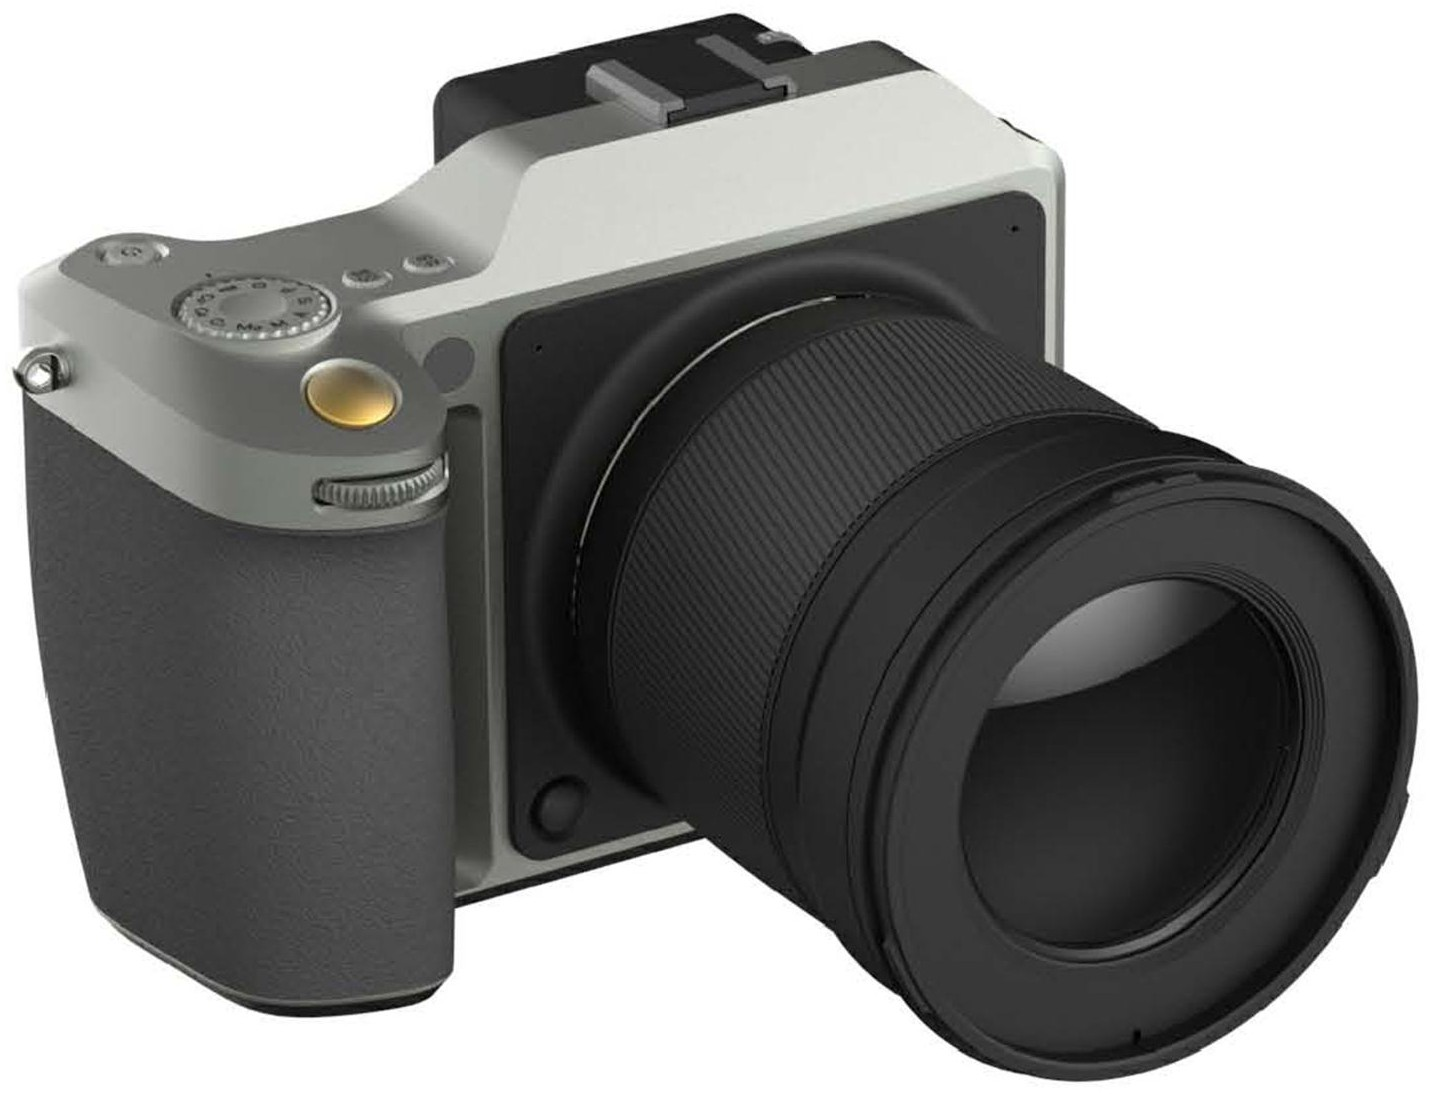 Rumors: DJI coming with a mirrorless camera that looks like the